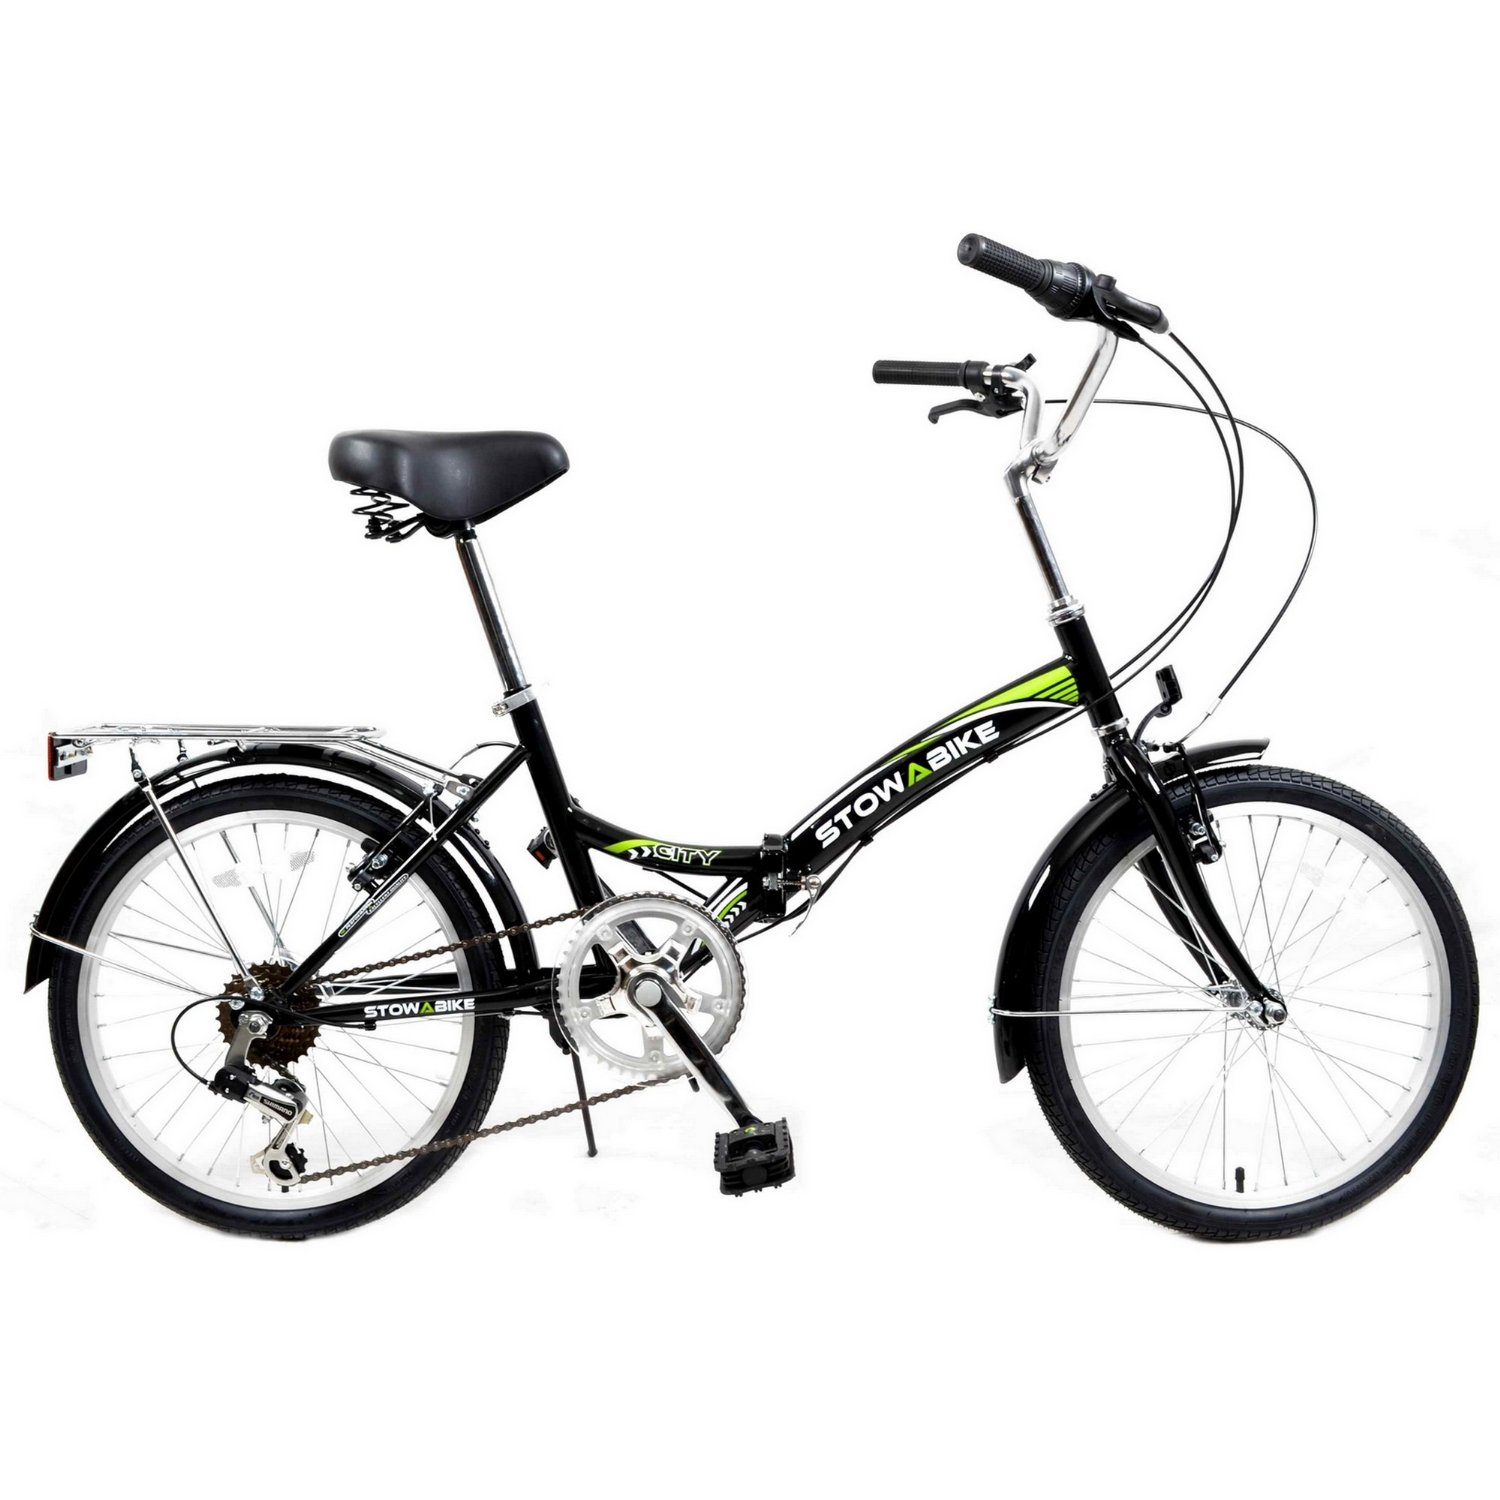 Stowabike 20 Folding City V2 Compact Foldable Bike Review